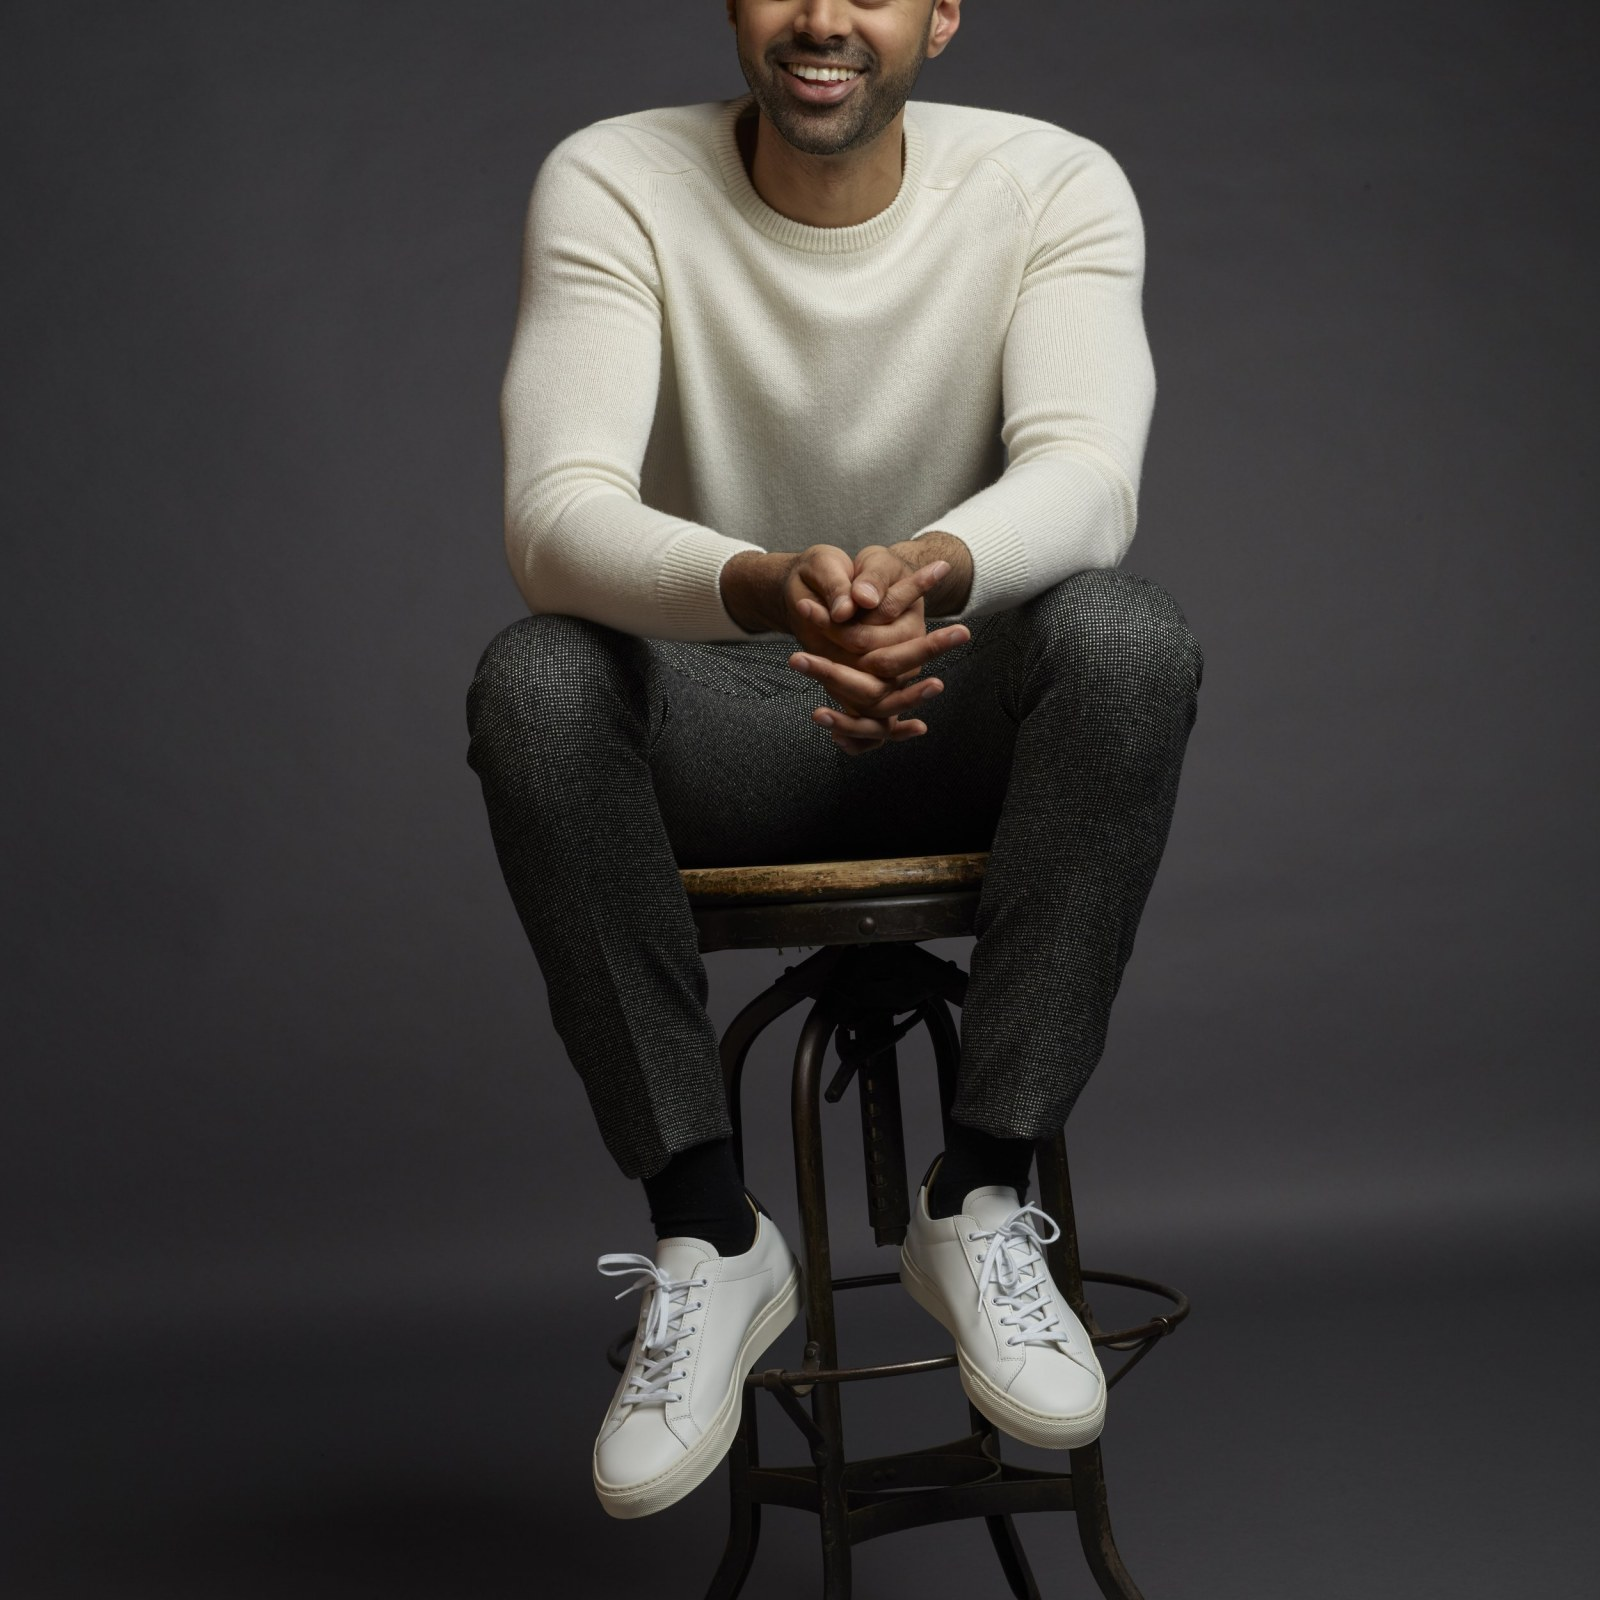 How Hasan Minhaj Went From Demeaning Auditions to Netflix's 'Patriot